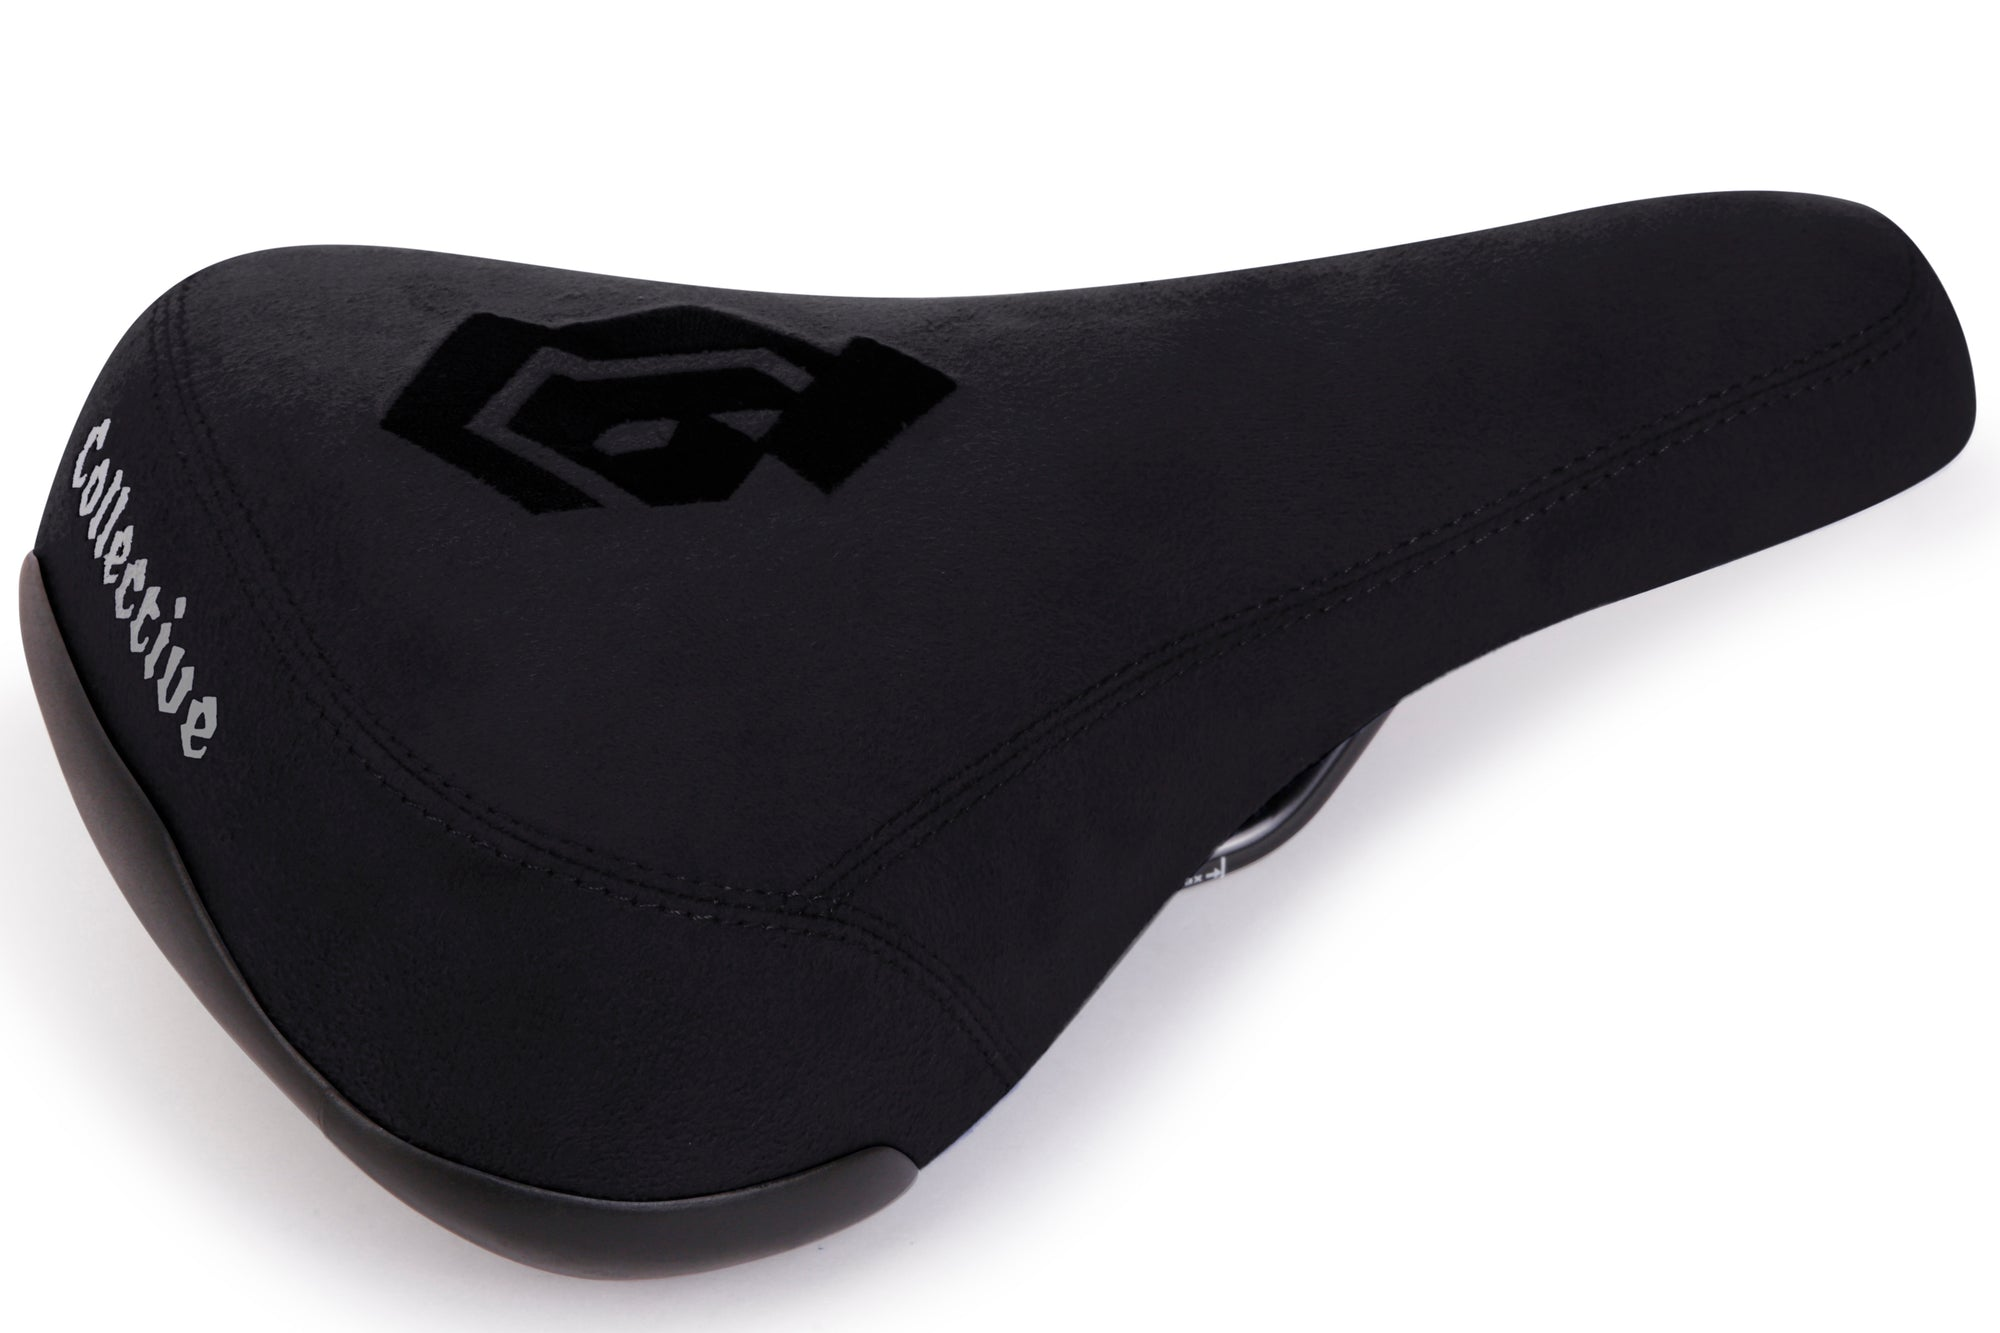 Collective Bikes MONOGRAM SEAT